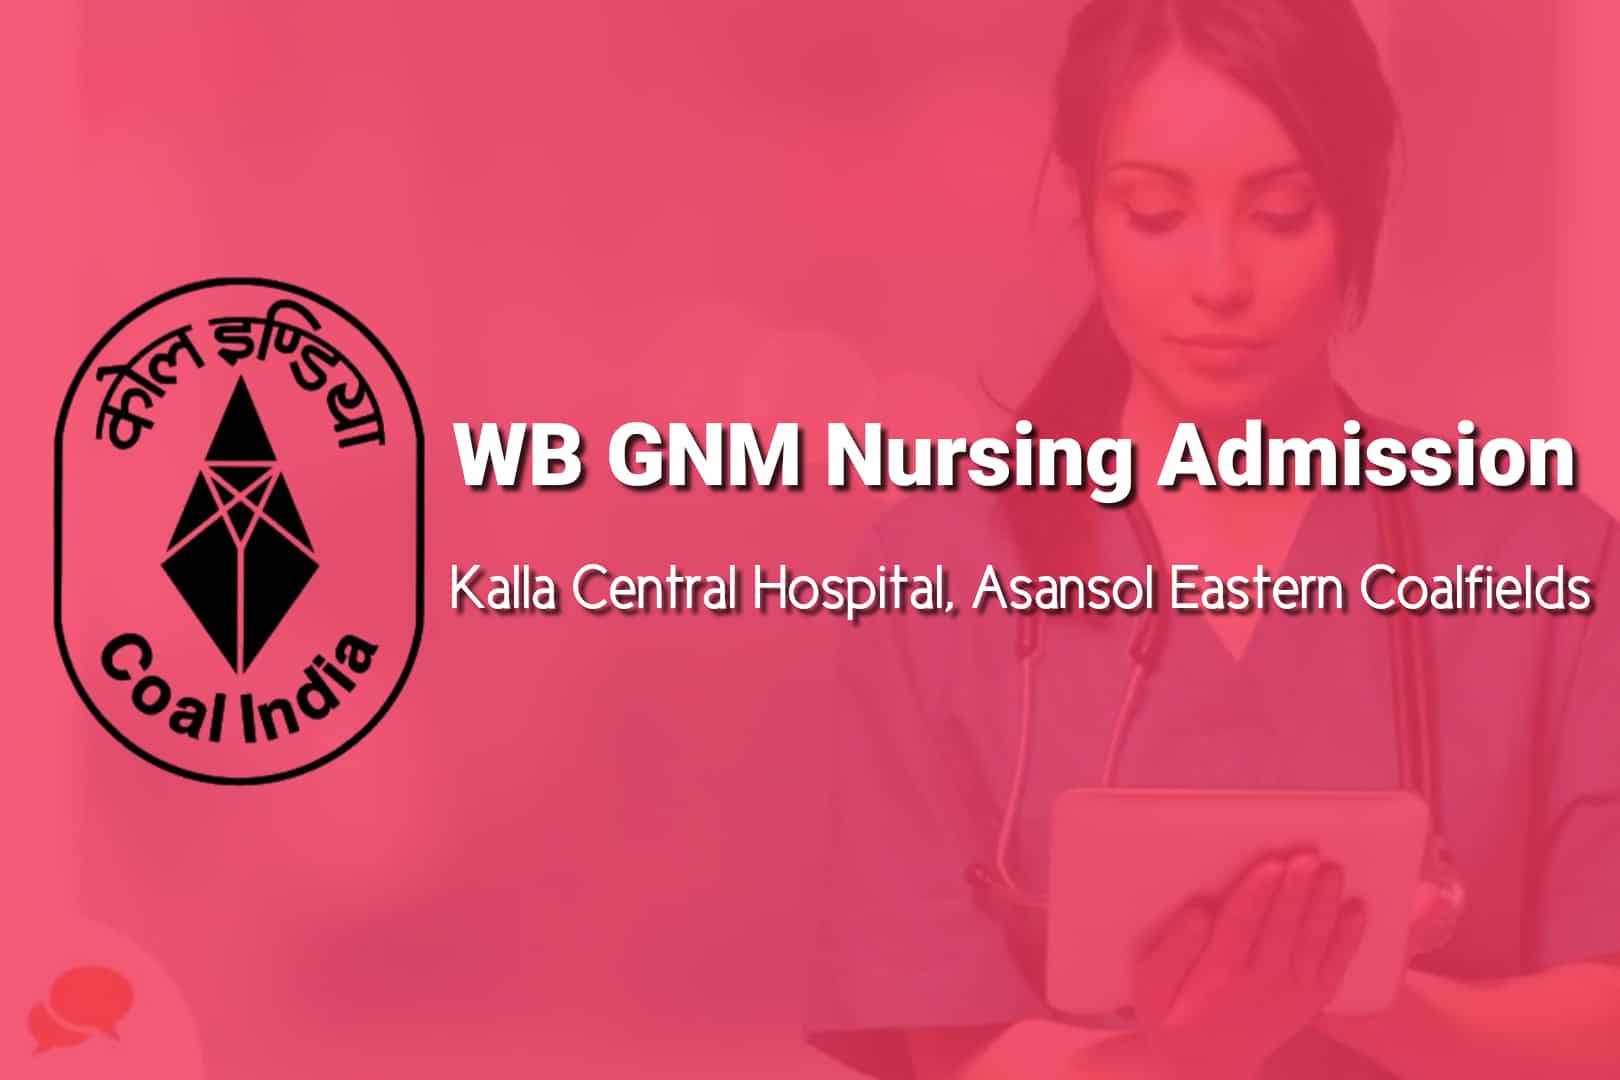 WB GNM Admission 2020 Kalla Central Hospital Asansol Eastern Coalfields 1